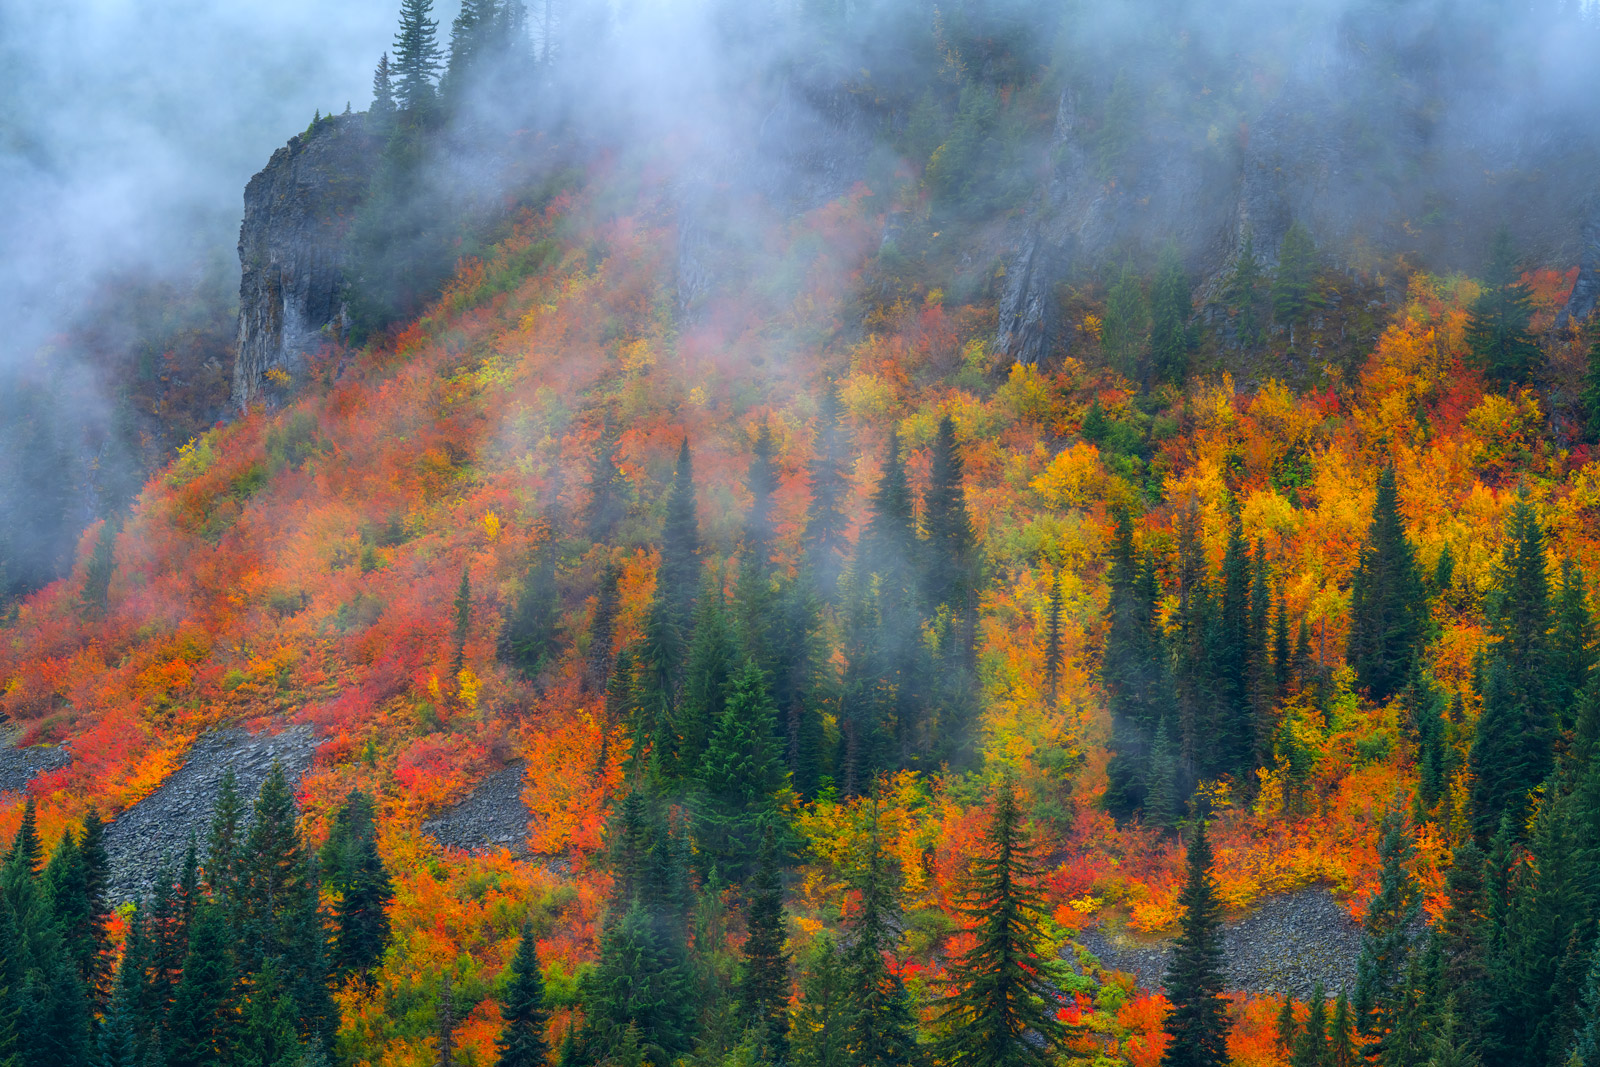 A Limited Edition, Fine Art photograph of fall color mixed with fog in Stevens Canyon near Mount Rainier in Washington. Available...